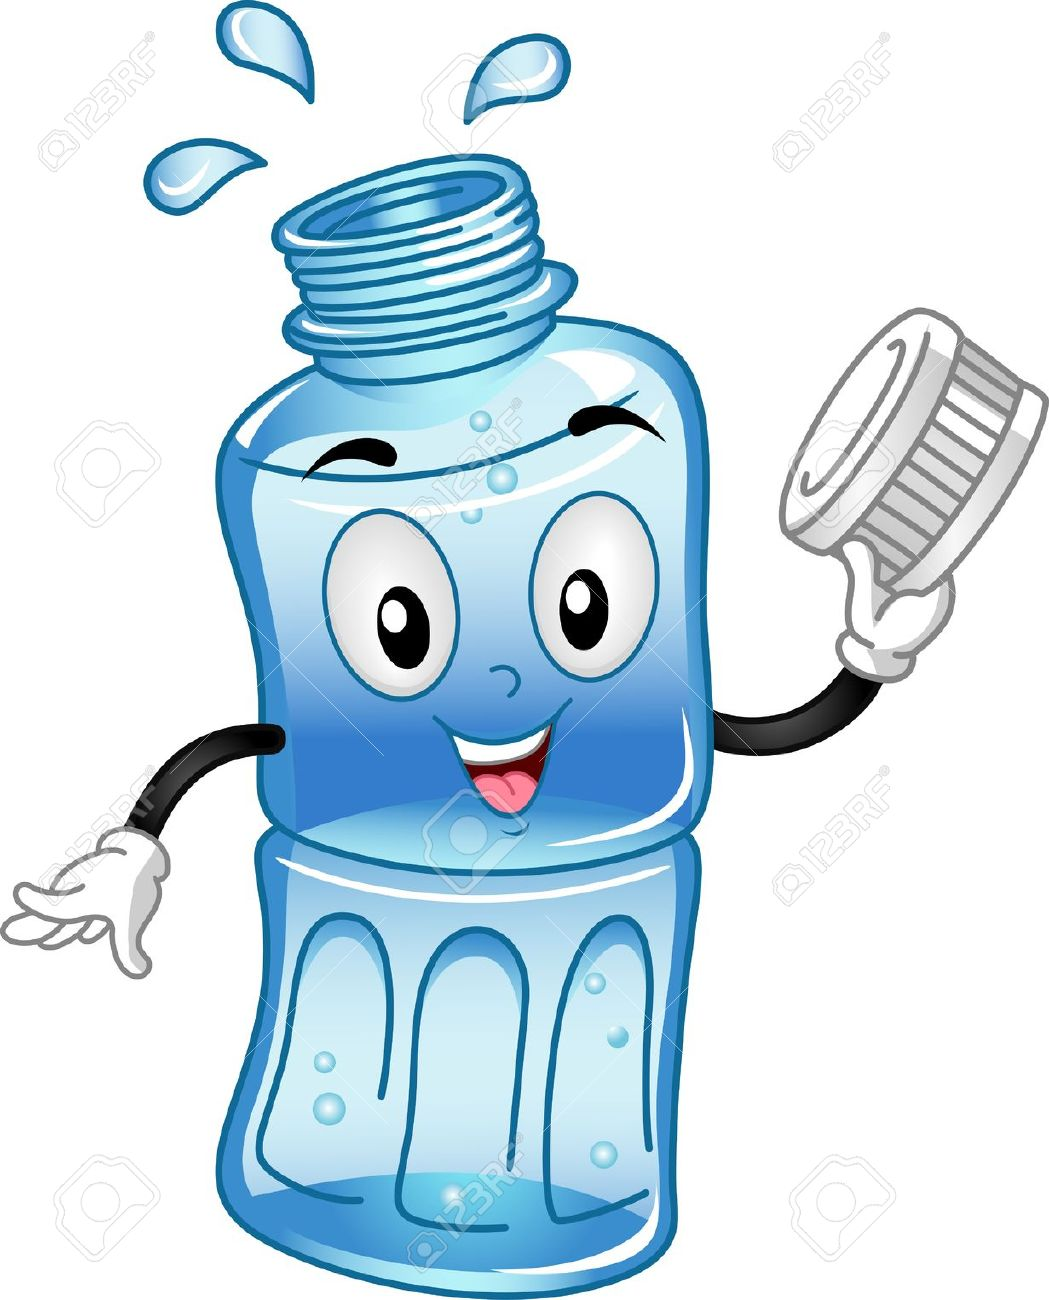 Plastic Water Bottle Clipart | Free download on ClipArtMag